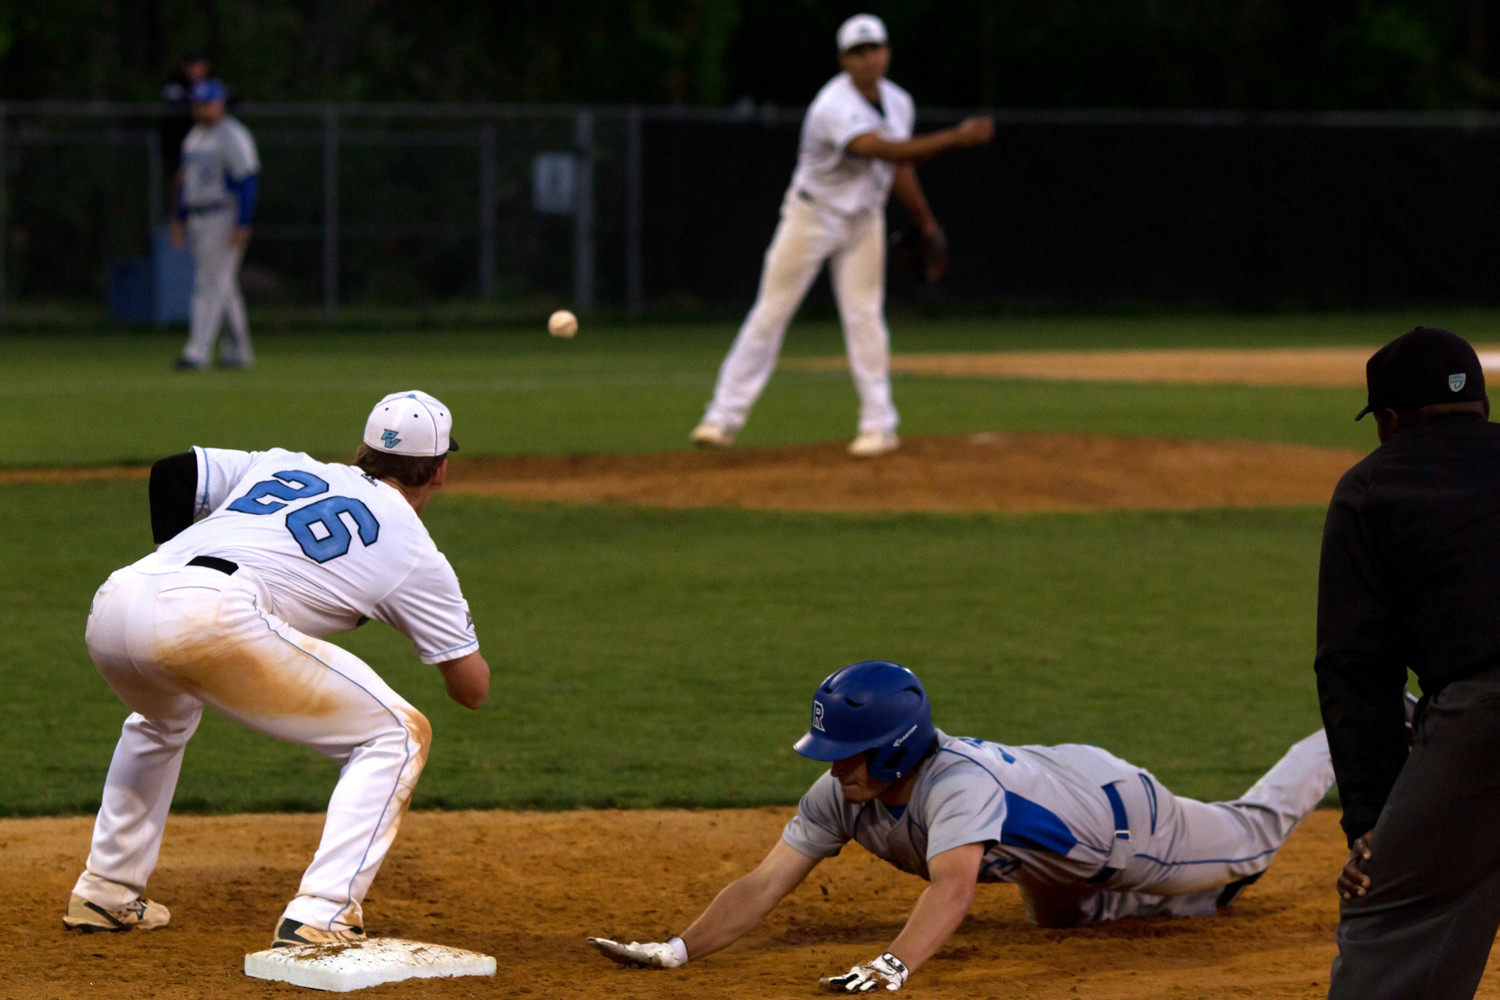 The Ridgeview runner dives back to first safely as Sharks' first baseman Tony Roca awaits the throw.